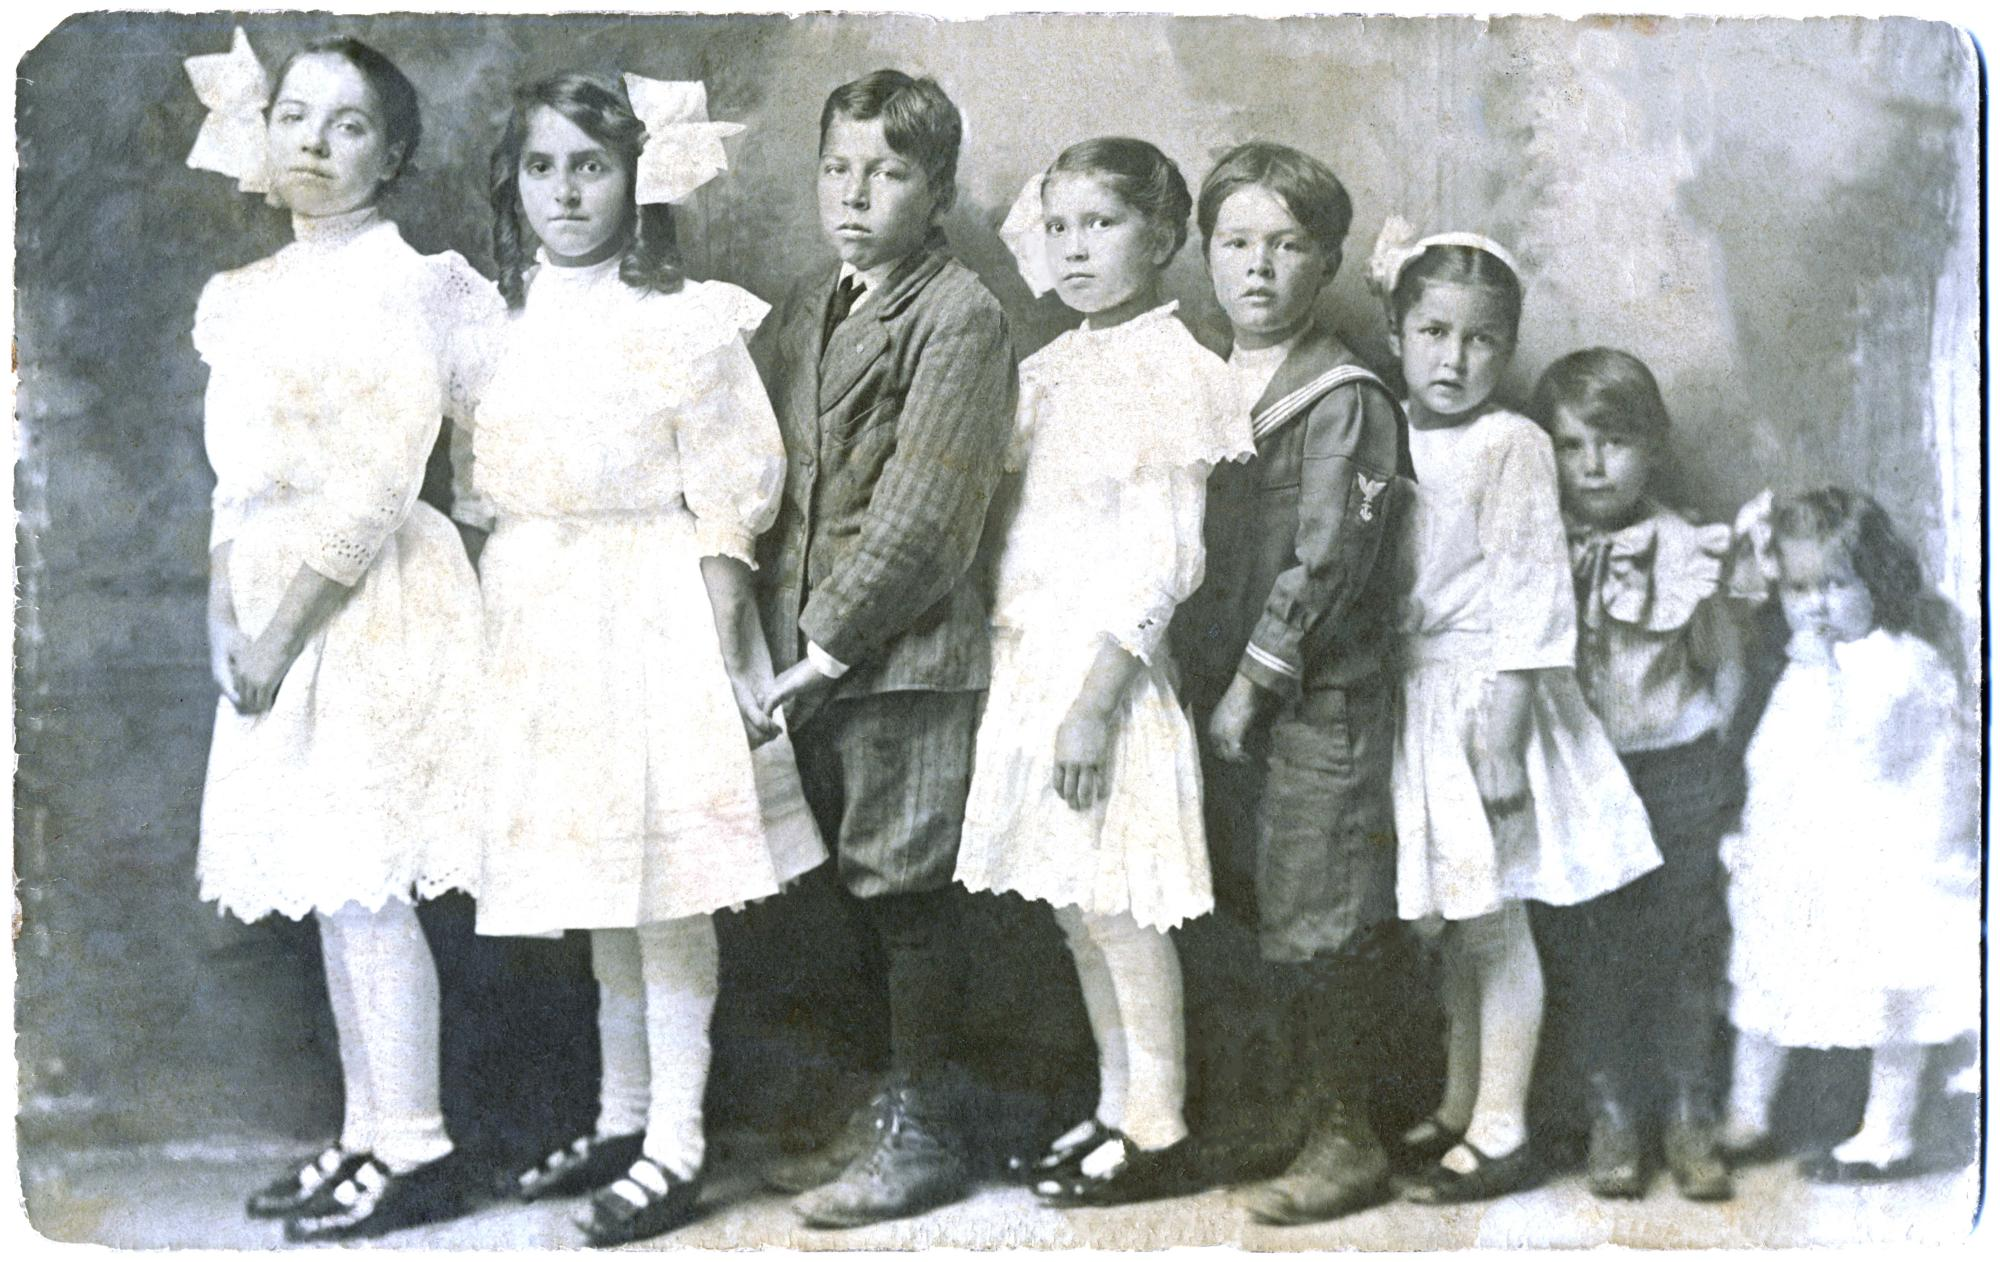 "Ethel McKinnon, Sarah McKinnon, Lester Hoover, Florence Hoover, Percy McKinnon, Mildred Hoover, William Teddy Marlow, Marieta ""Sissy"" Marlow, left to right"